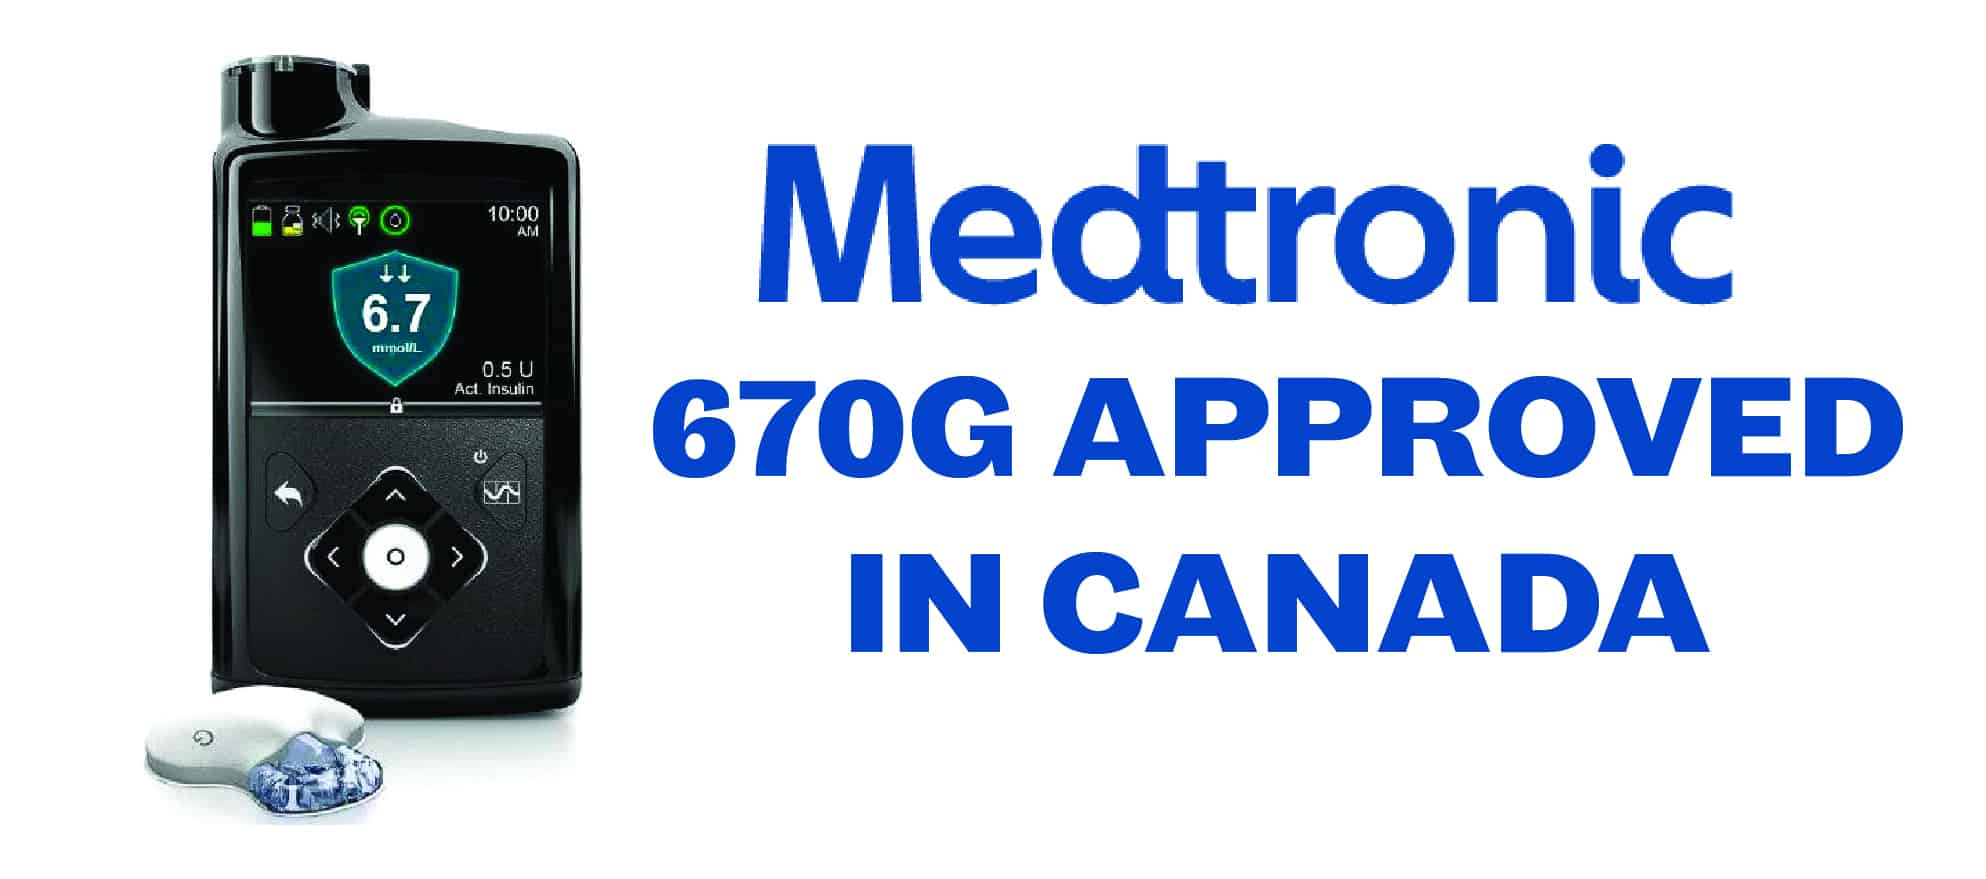 Tech Update: Medtronic 670G Insulin Pump approved by Health